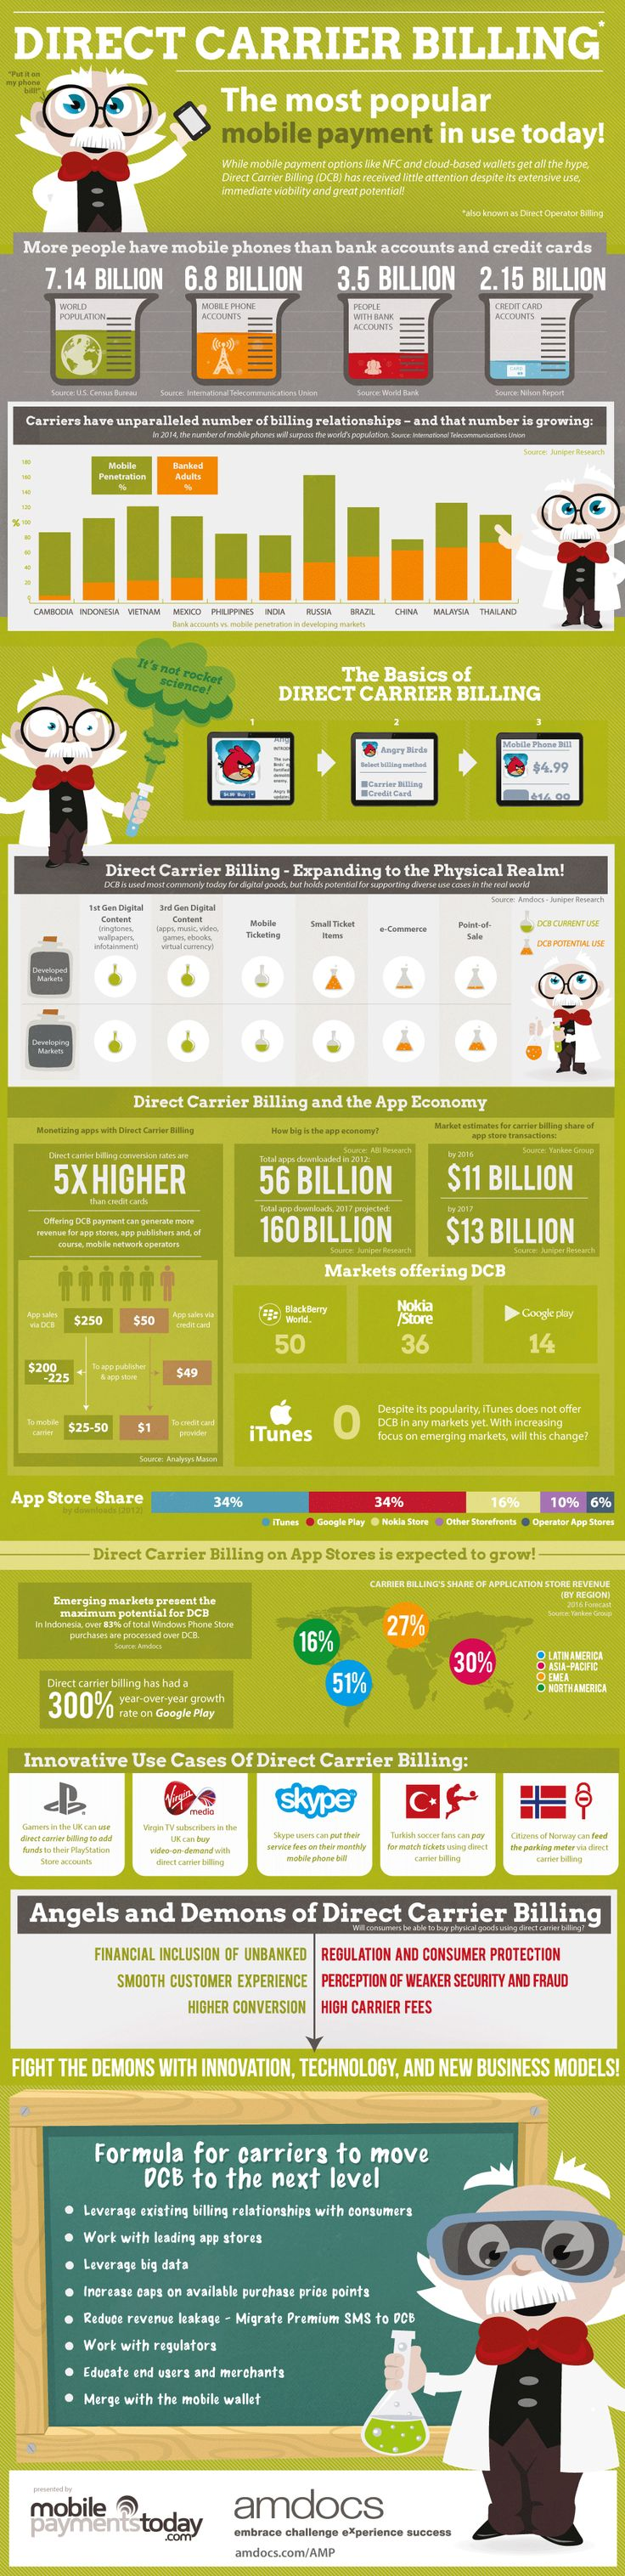 Direct Carrier Billing: The Most Popular Mobile Payment [Infographic] Direct Carrier Billing: The Most Popular Mobile Payment